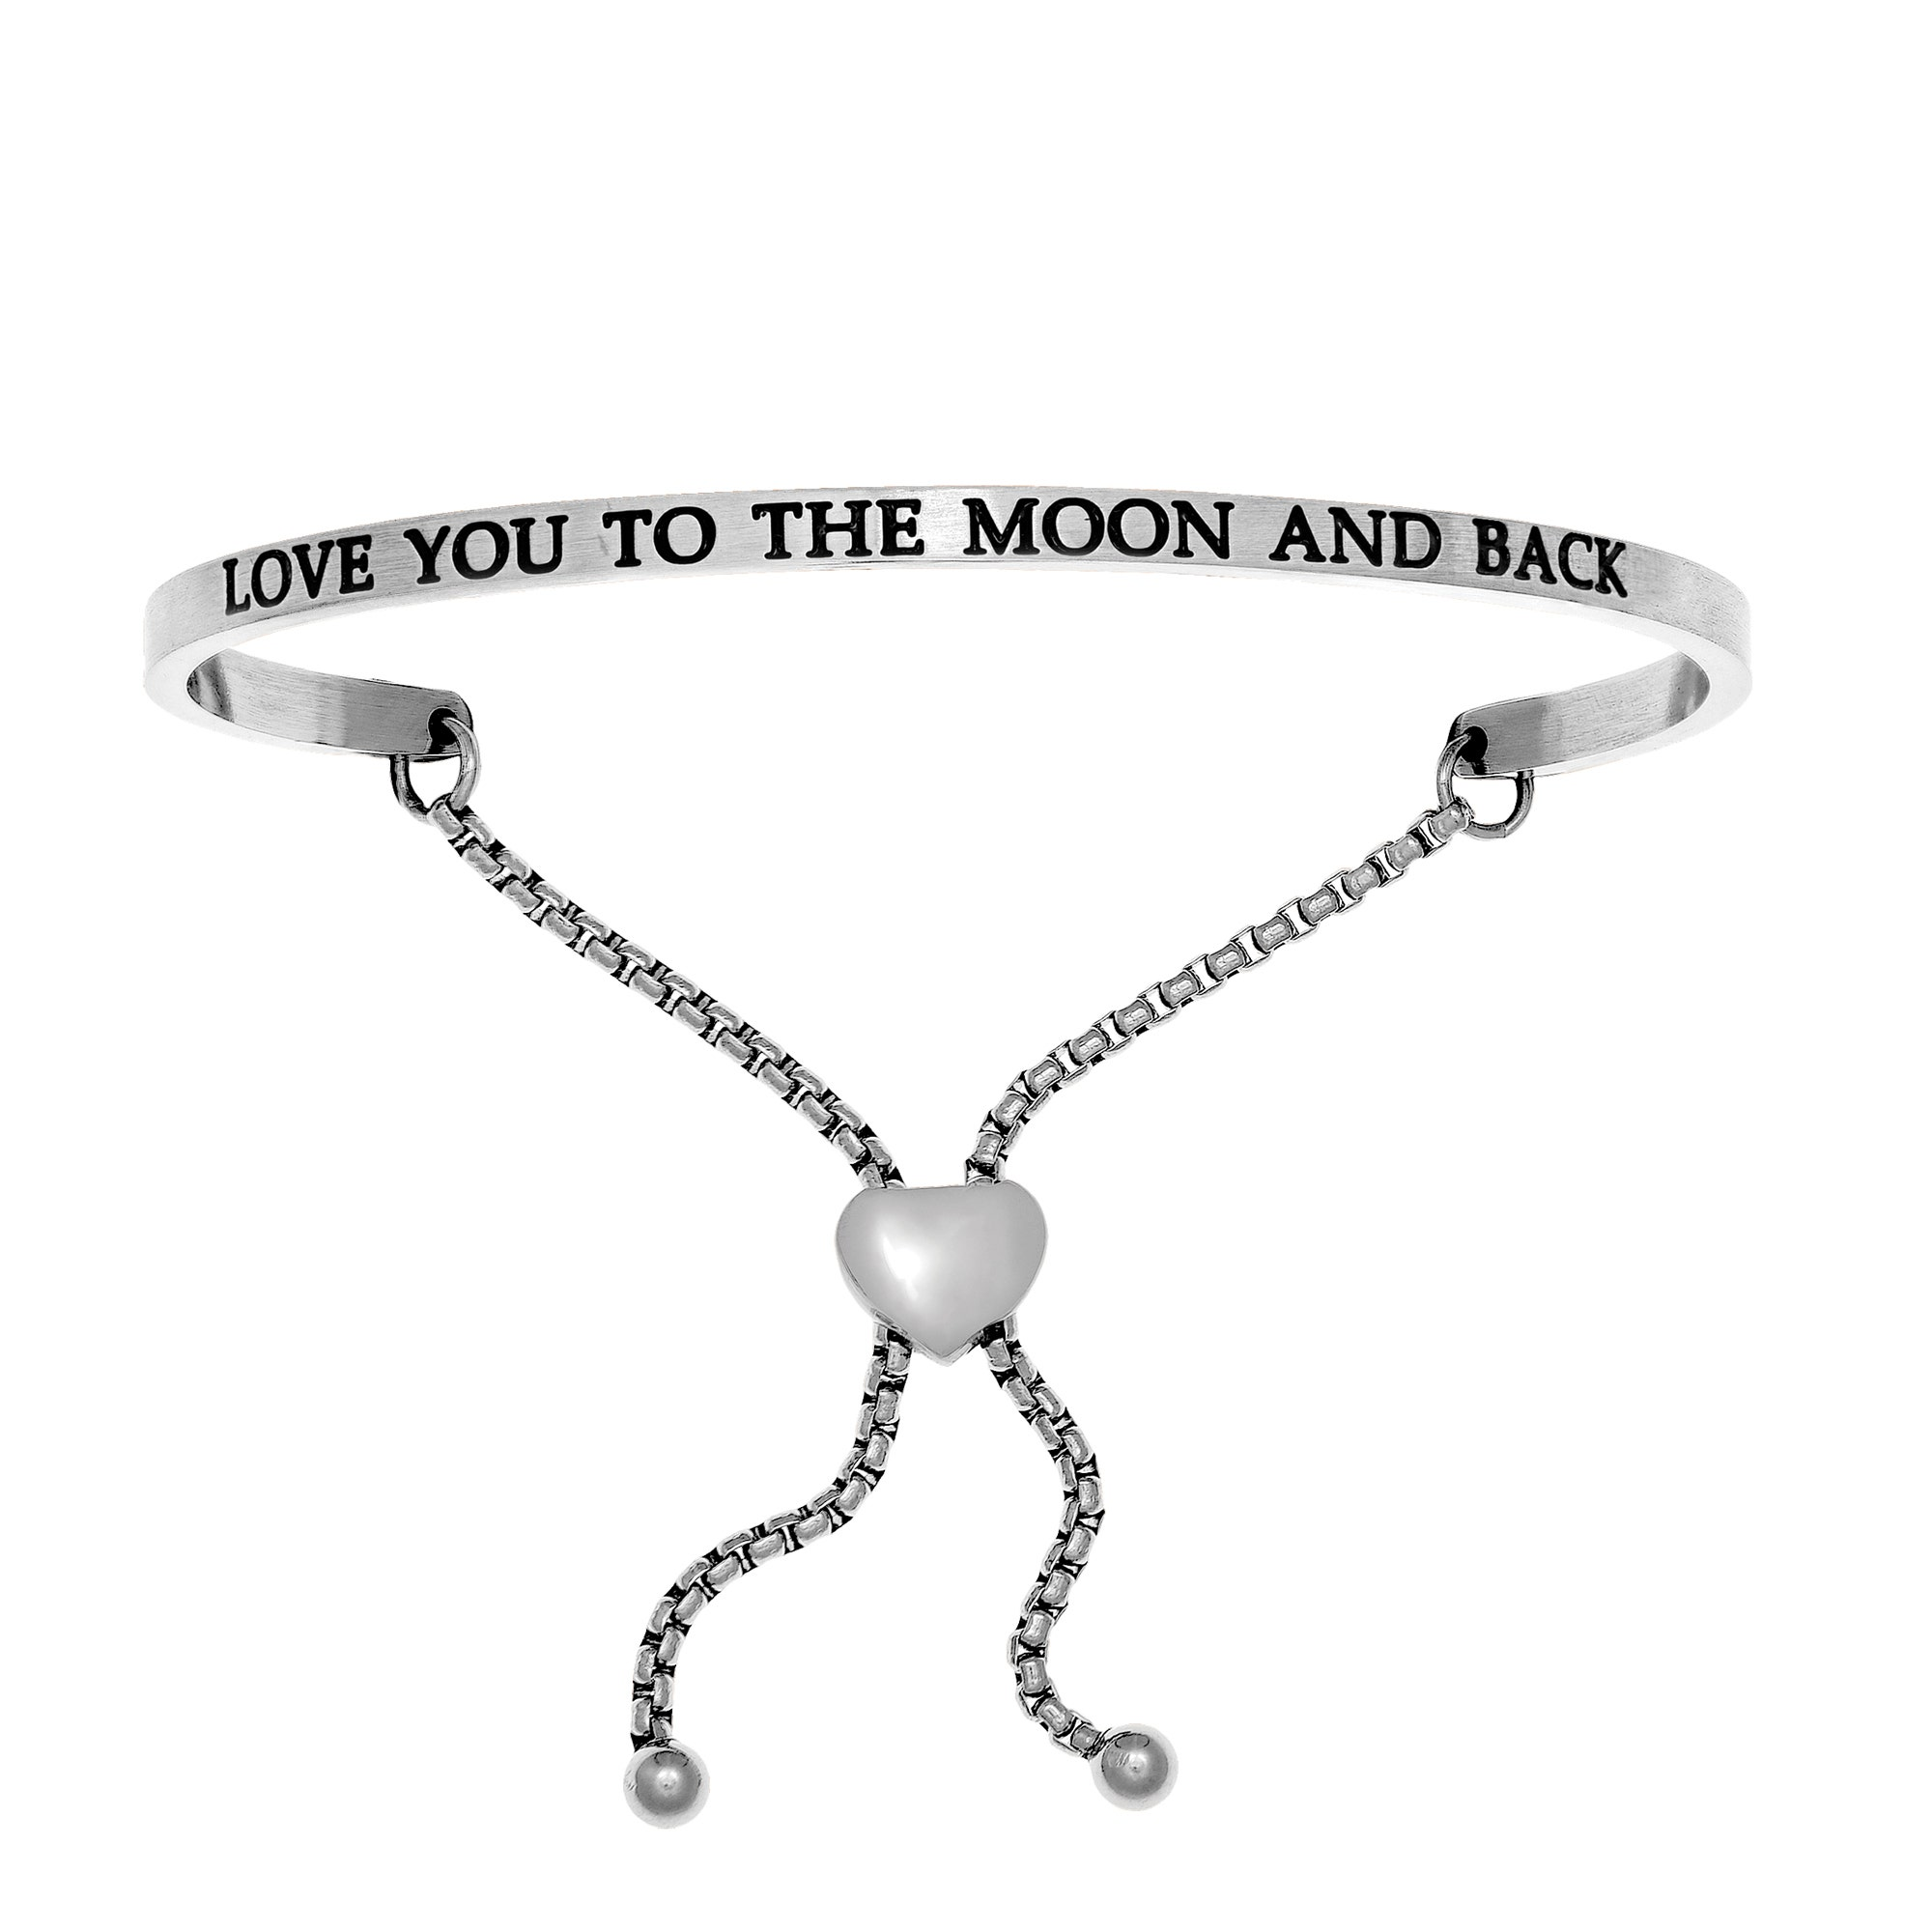 I Love You to the Moon and Back Bolo Bracelet 925 Sterling Silver Adjustable NEW